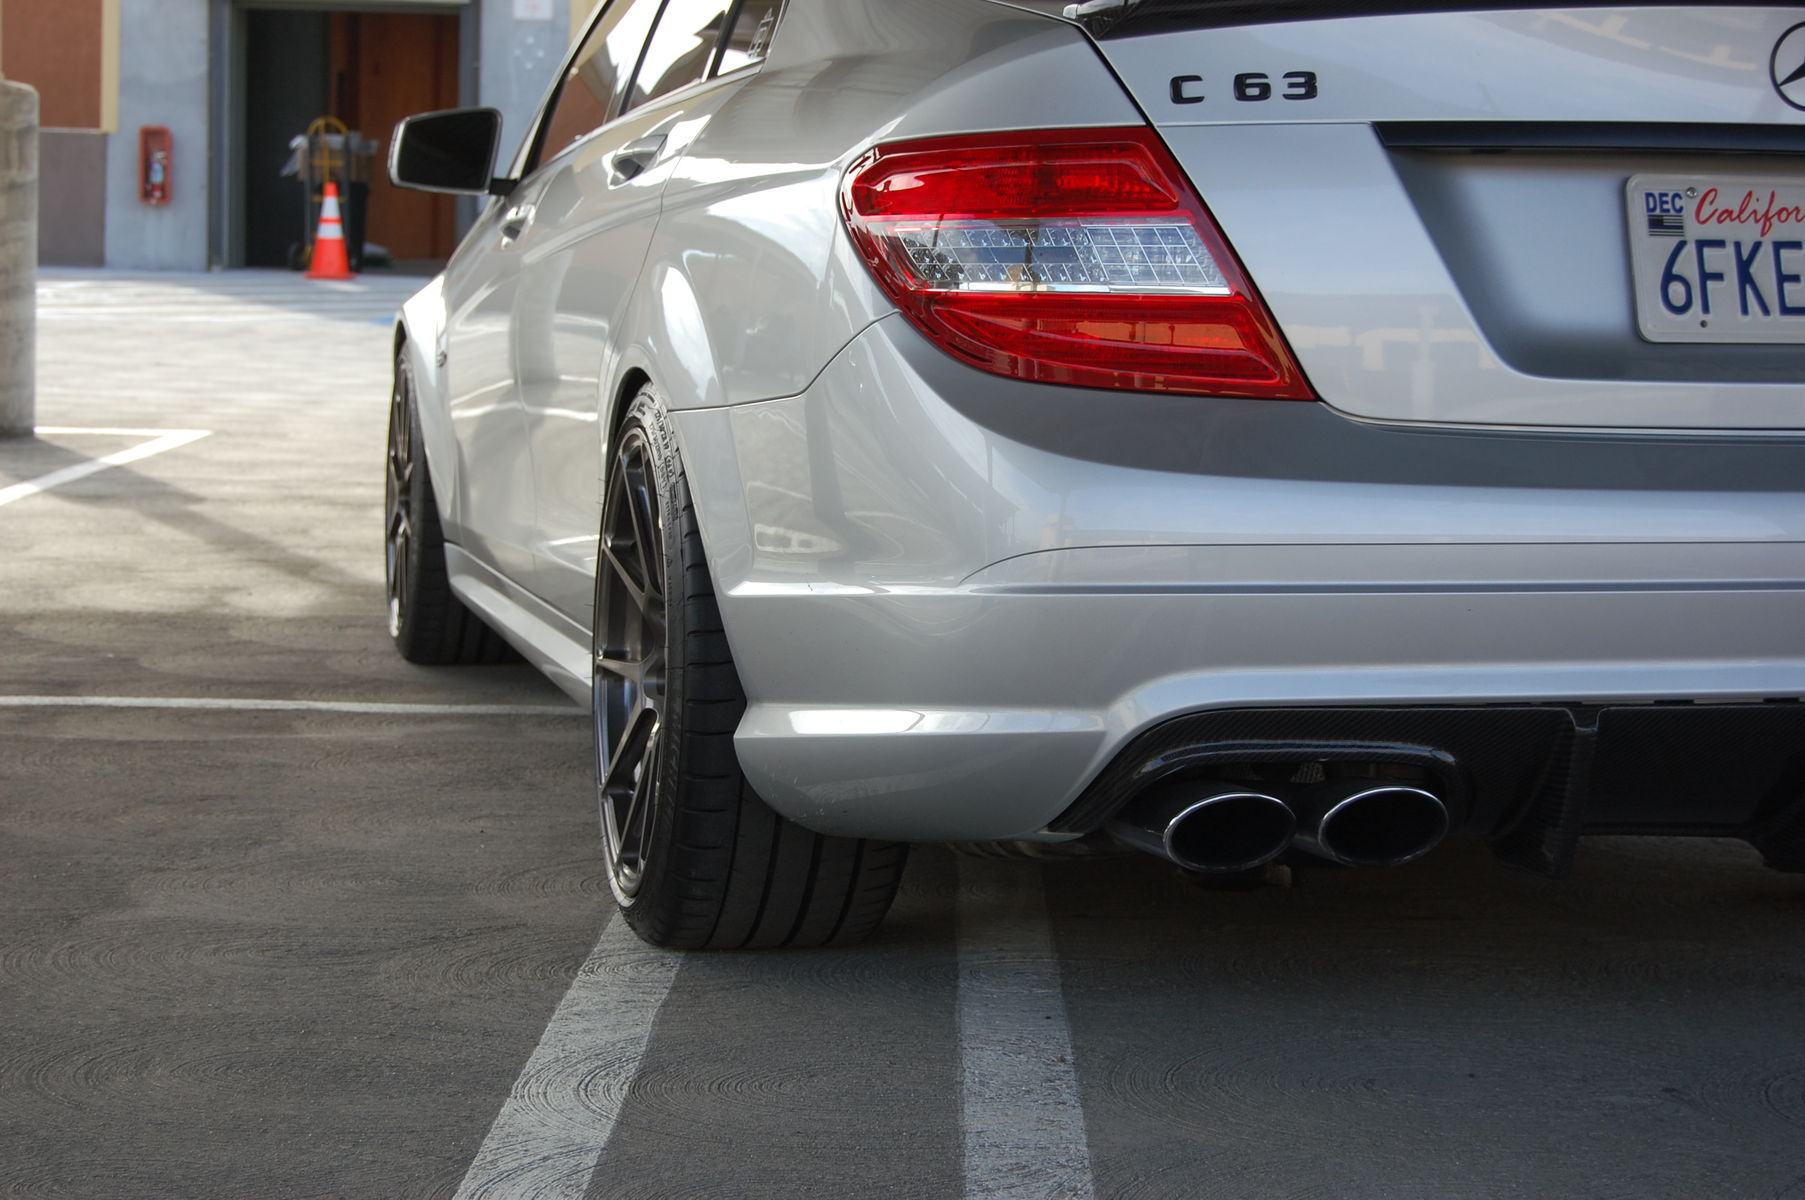 2009 Mercedes-Benz C63 AMG | C63 AMG on Forgeline GA1R Open Lug Cap Edition Wheels